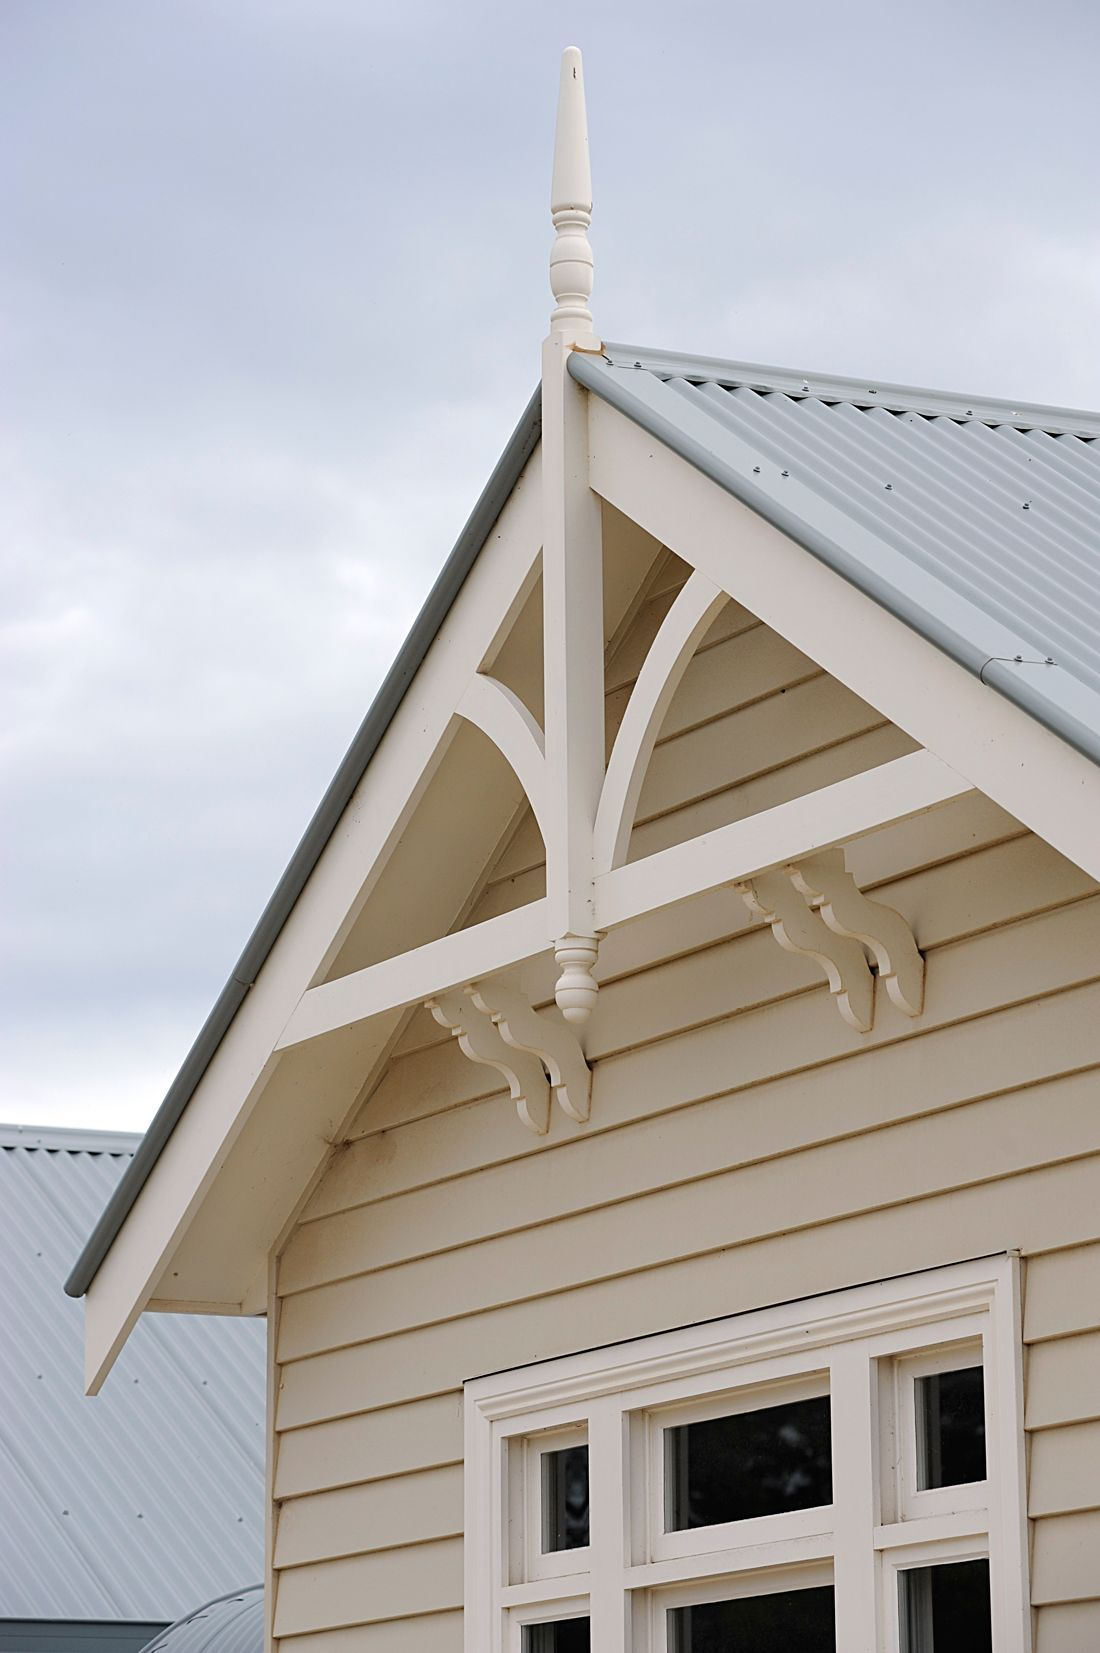 Best Gable Roof Styles Decoration Pictures Classicexteriordesign Facade House Weatherboard House Gable Roof Design